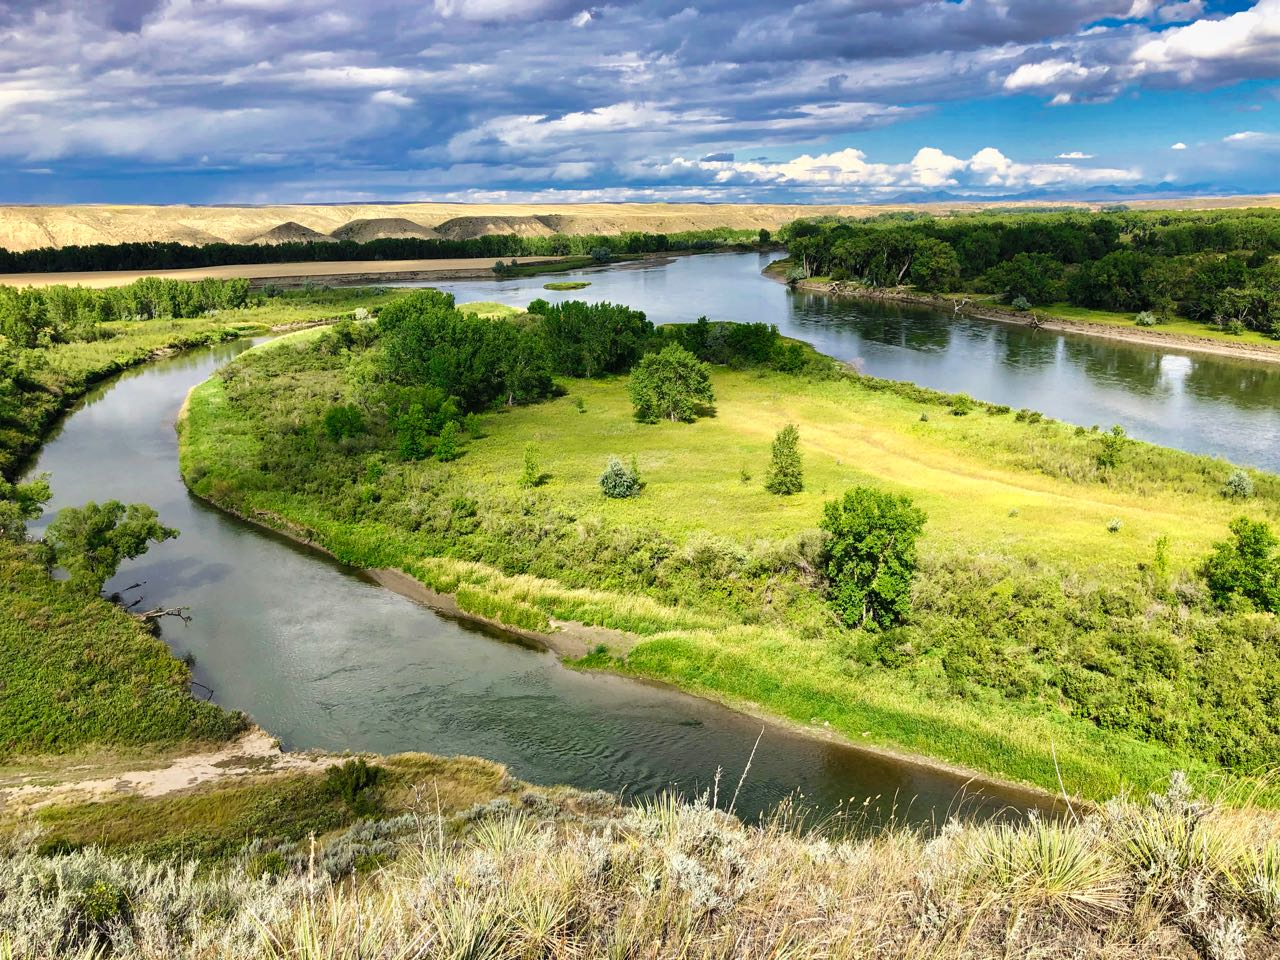 Decision Point, Upper Missouri River Breaks